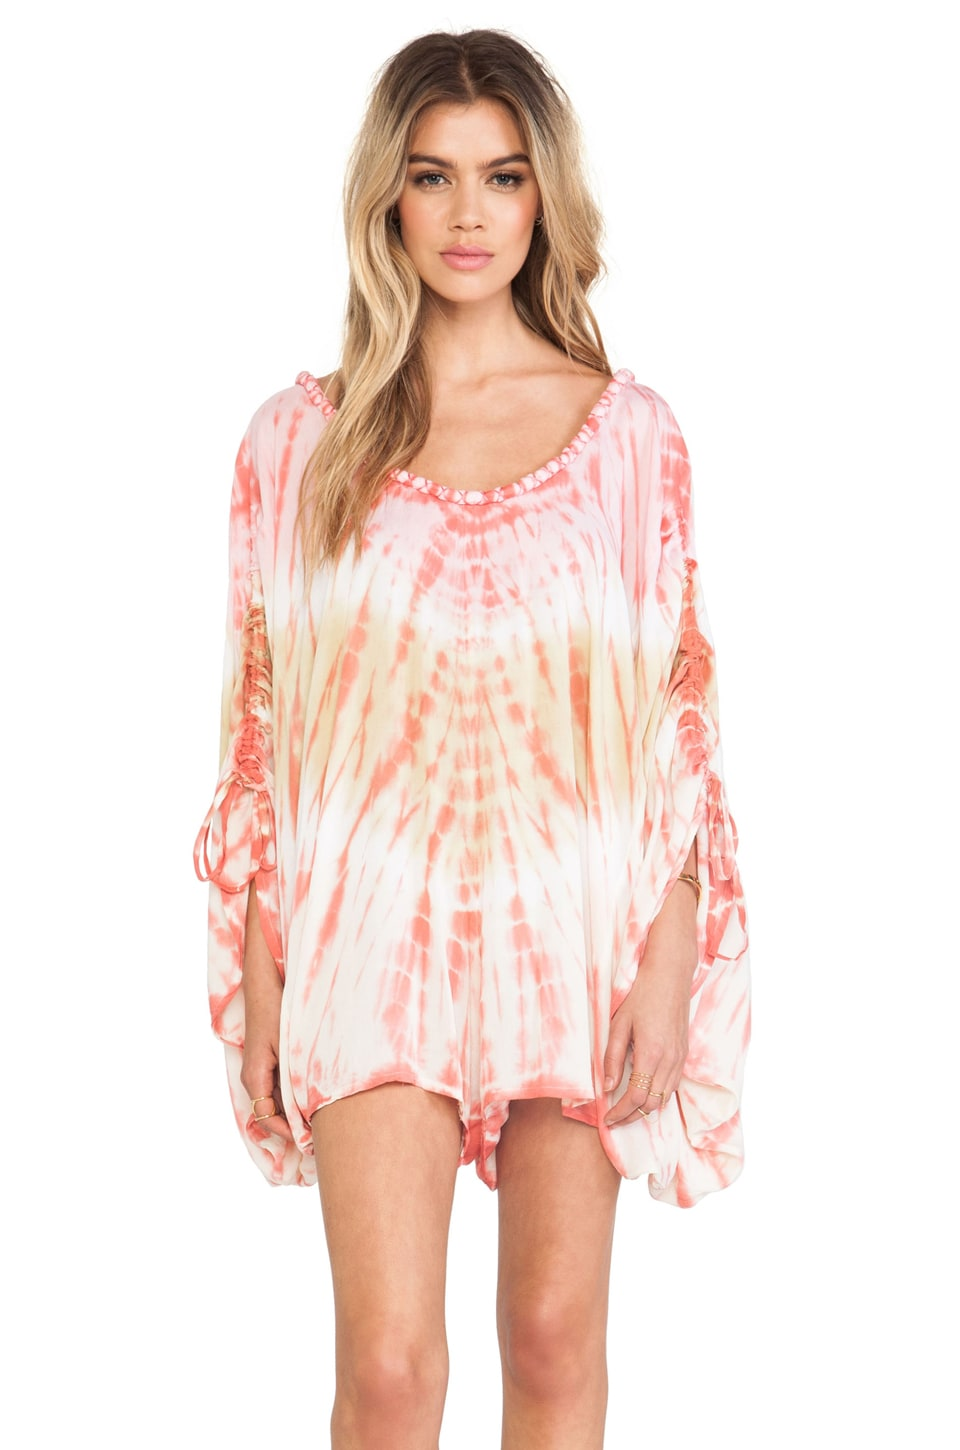 Tiare Hawaii Banyans Romper in Orange & Skin Vibe